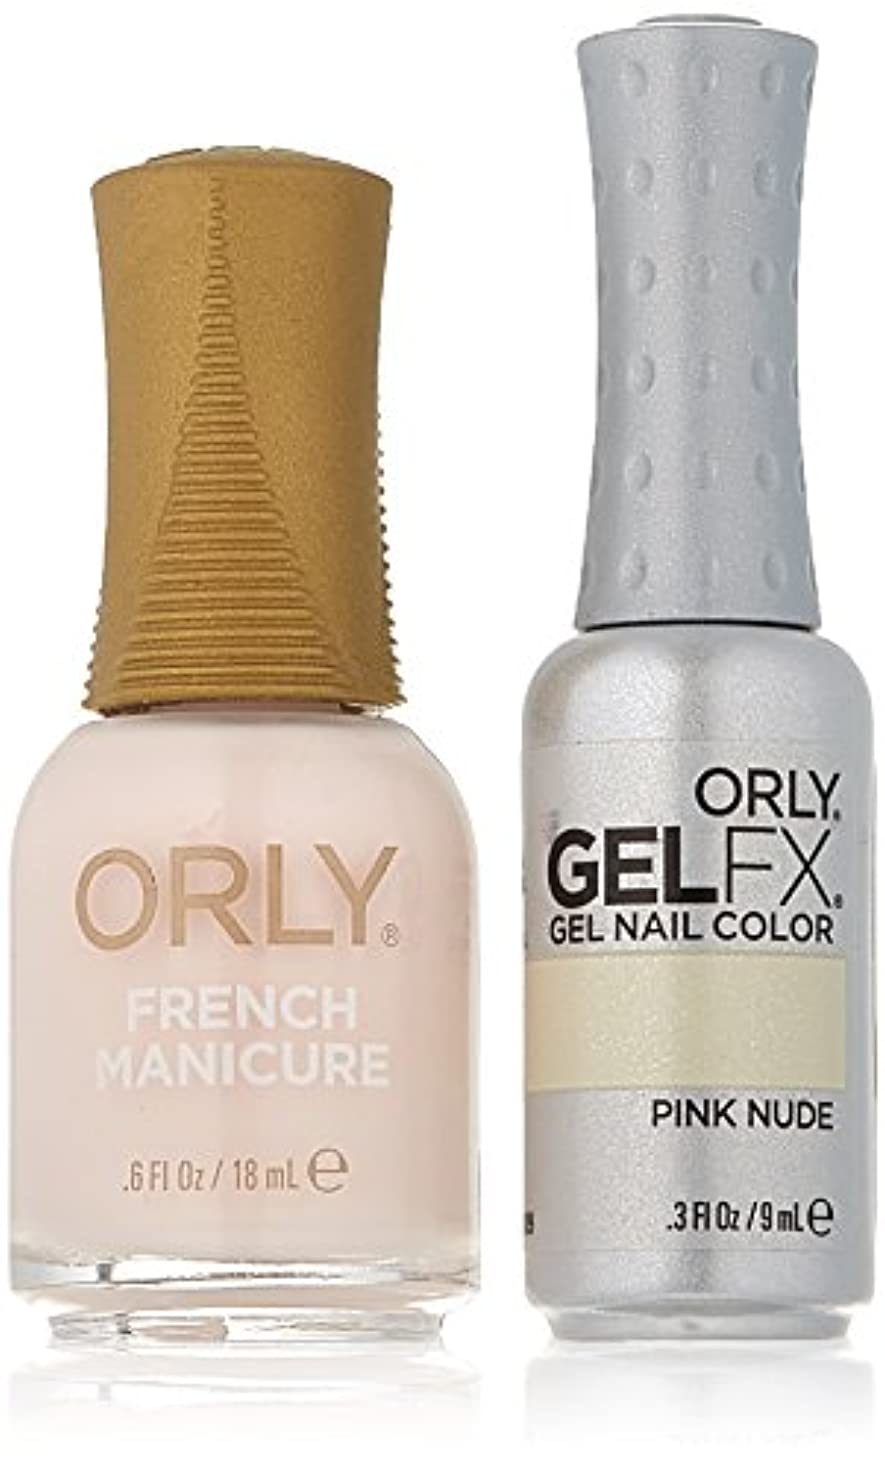 シリンダー解くOrly Nail Lacquer + Gel FX - Perfect Pair Matching DUO - Pink Nude